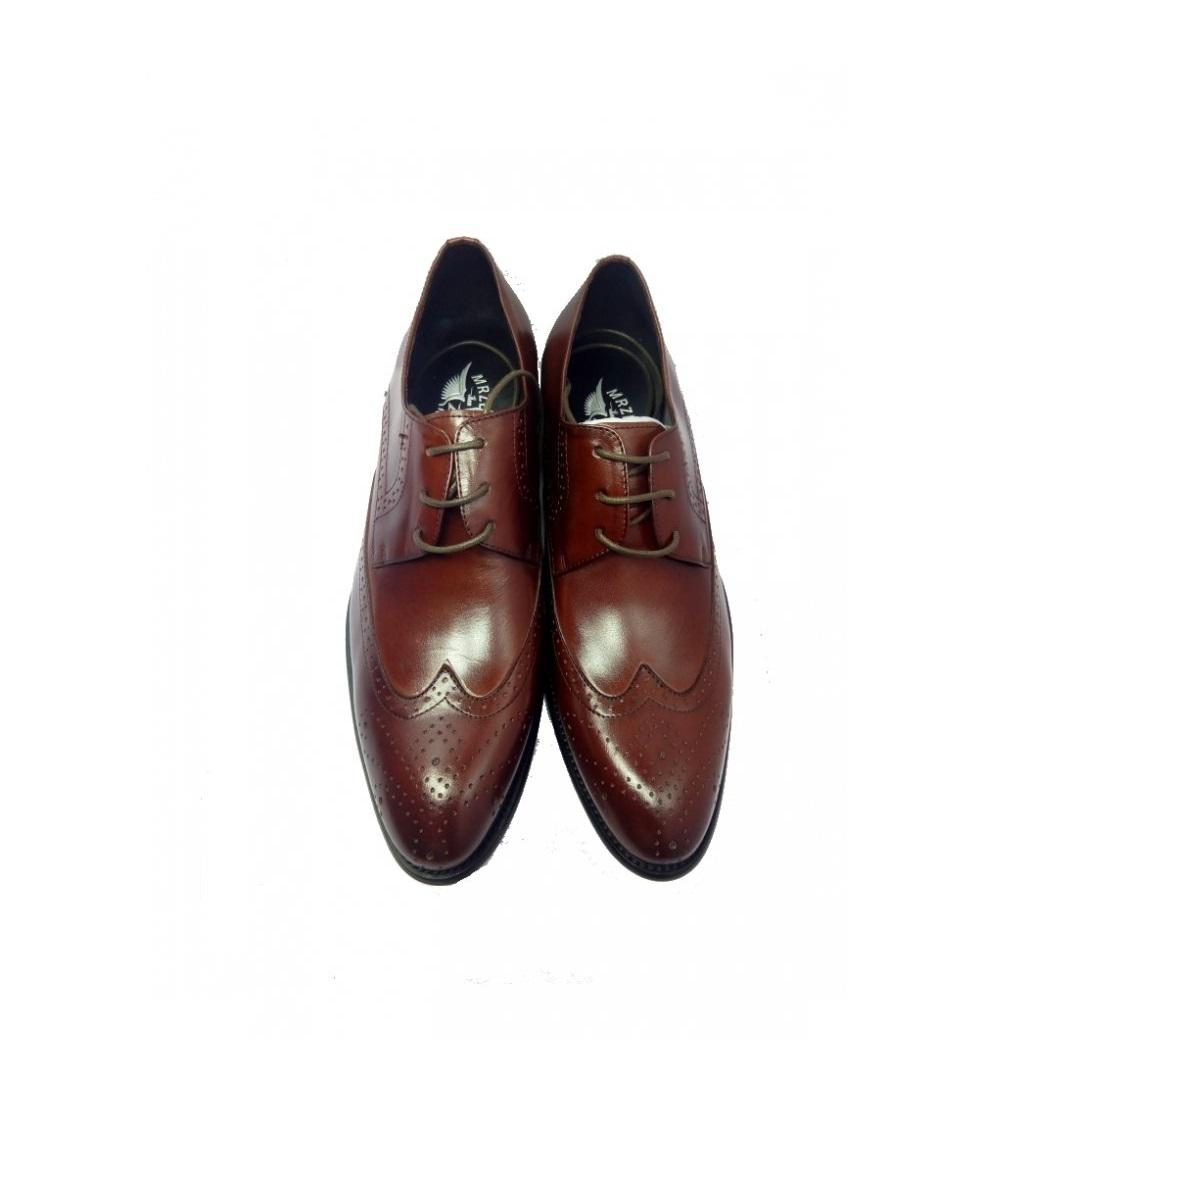 Zenith Brogues Formal Shoe -Mr | Shoes for sale in Alimosho, Lagos State, Nigeria